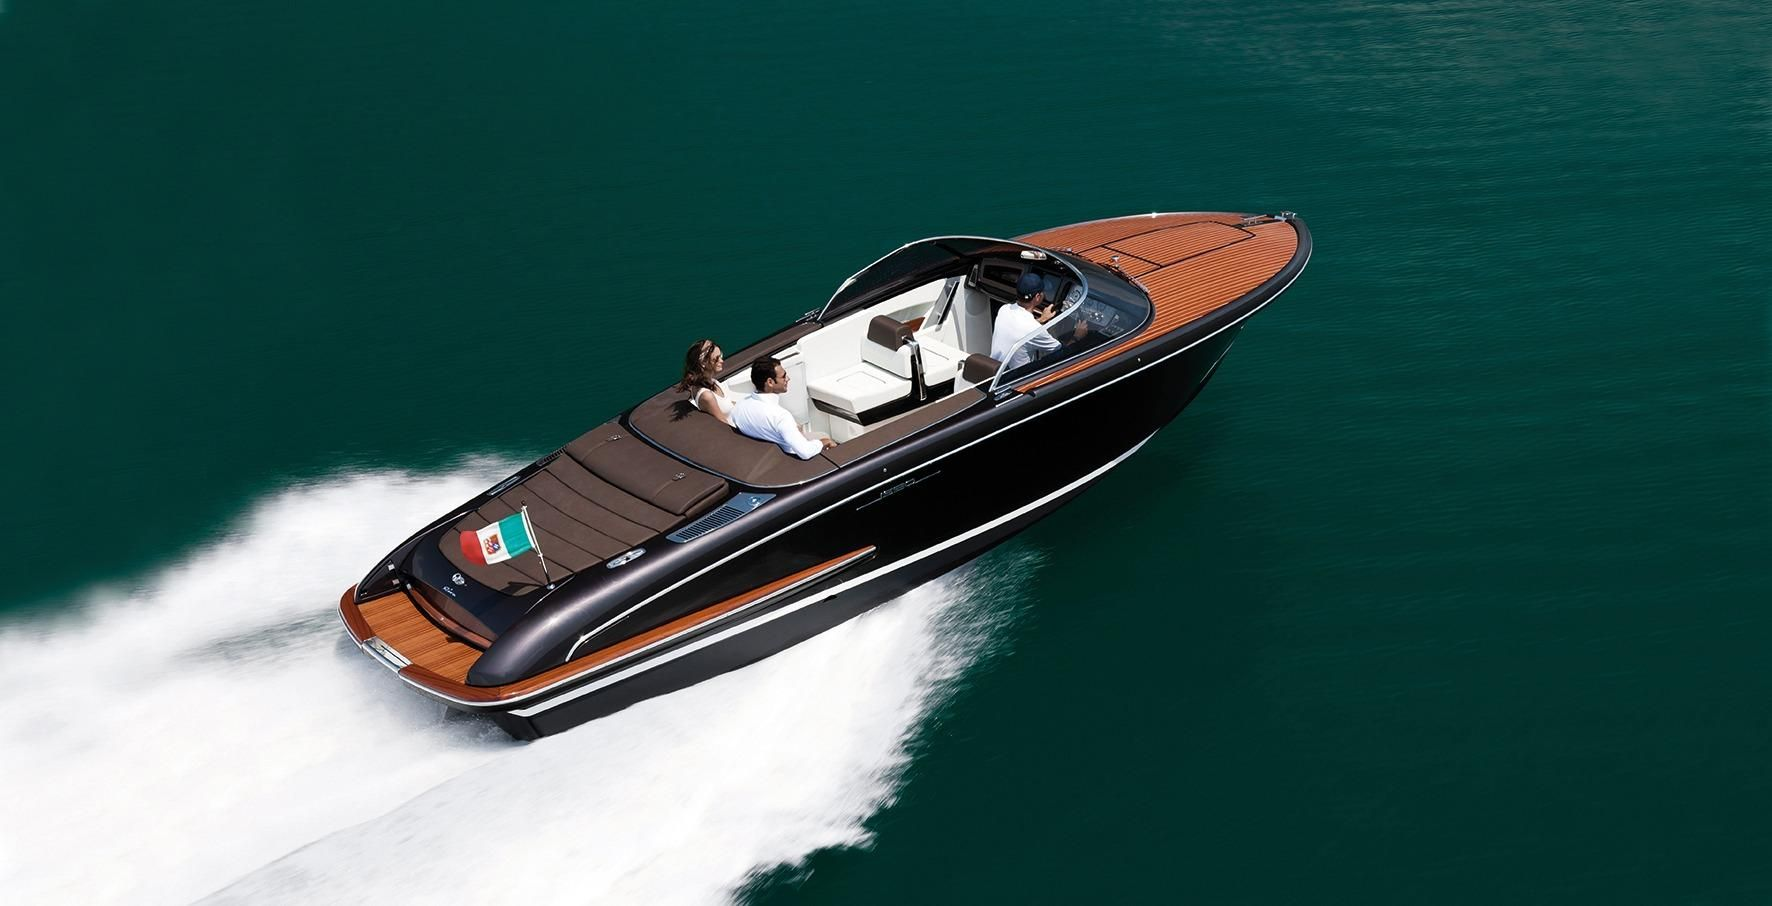 2013 Riva Iseo Power Boat For Sale Www Yachtworld Com